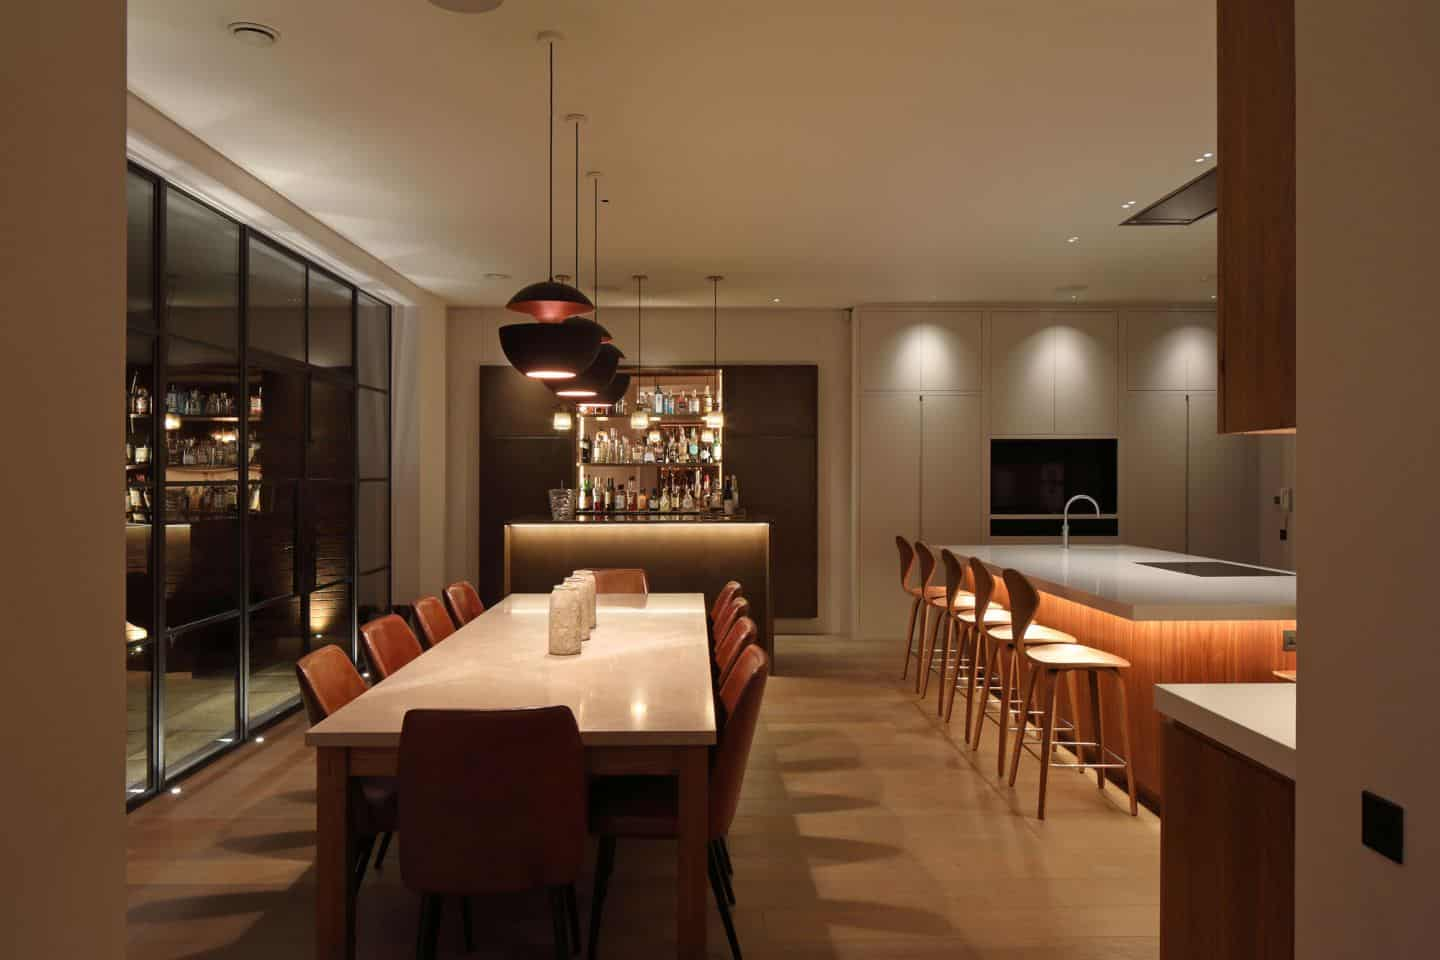 Kitchen design trends - Layered lighting in a kitchen/dining room. Lighting by John Cullen Lighting